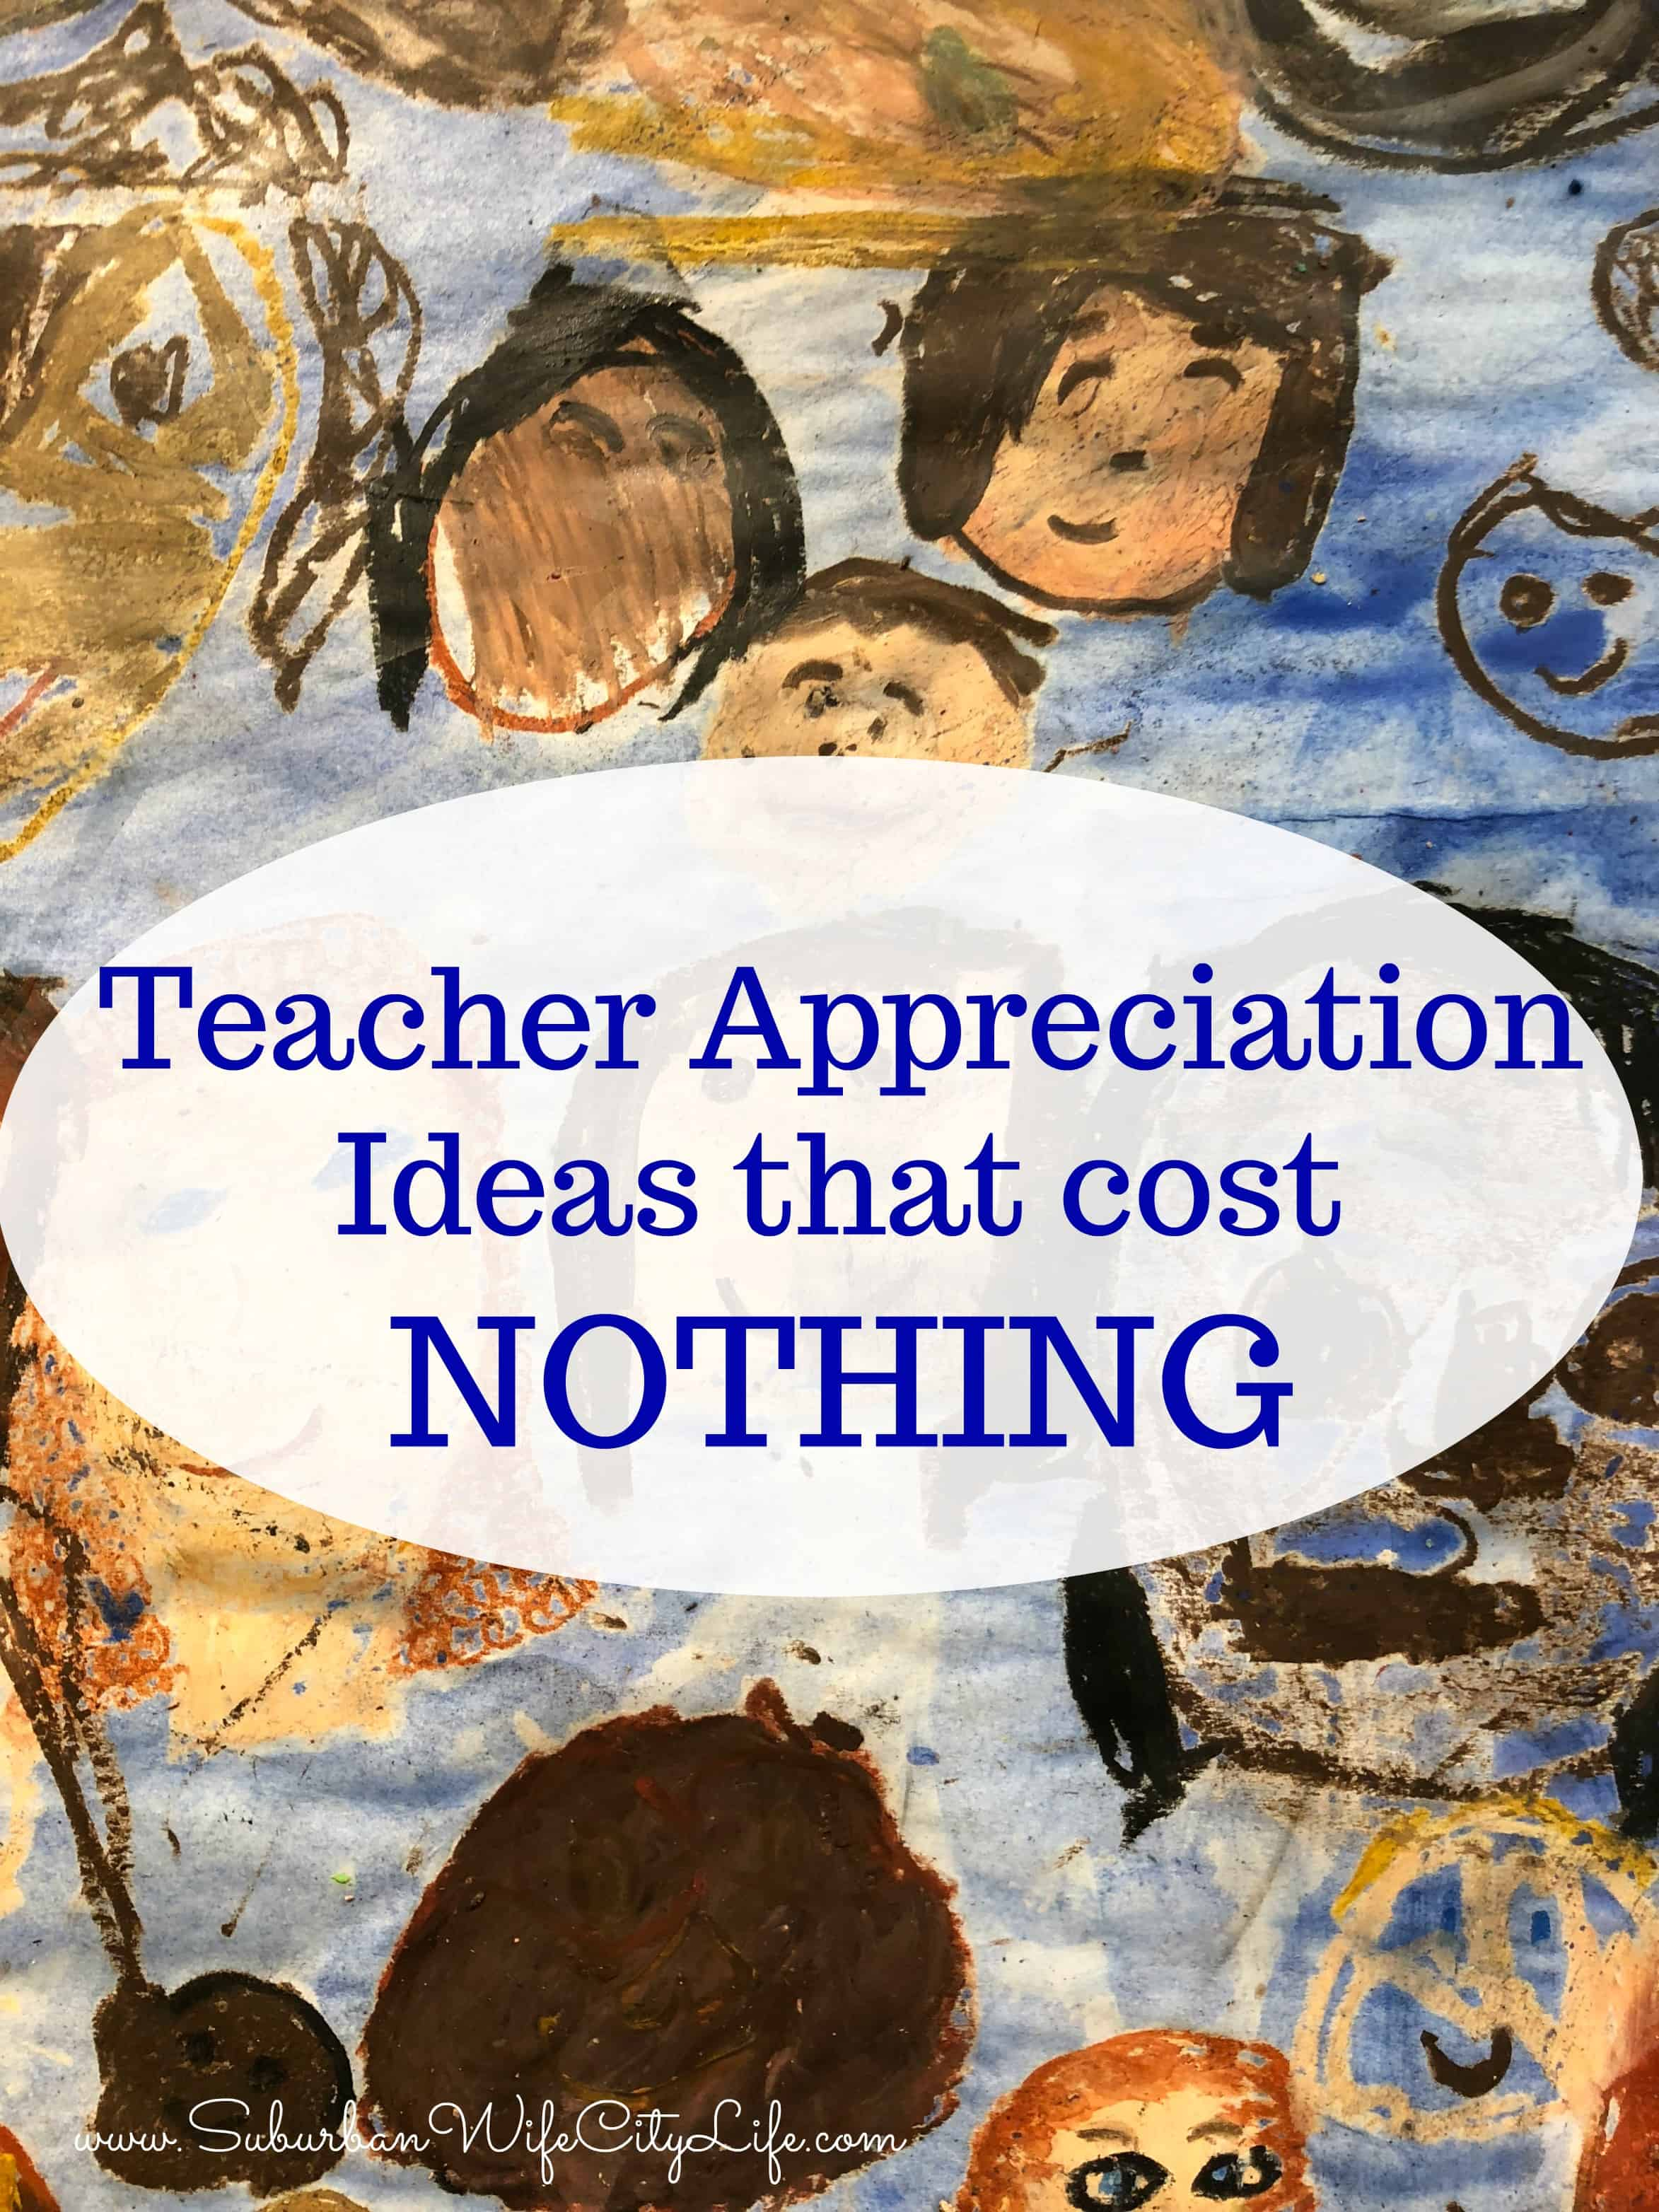 Teacher Appreciation Ideas that cost nothing